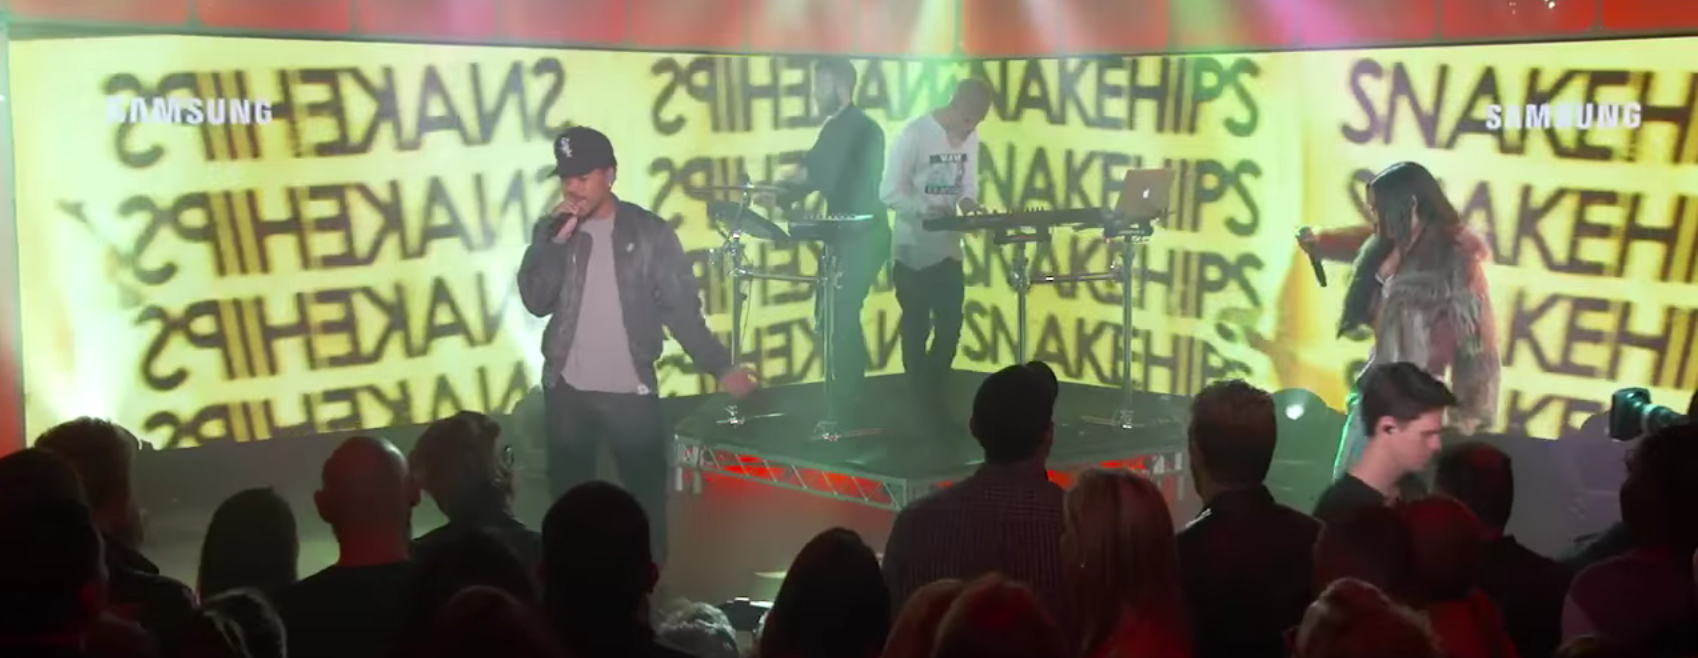 Watch This: Snakehips performs on Jimmy Kimmel with Tinashe and Chance The RapperSnakehips Kimmel